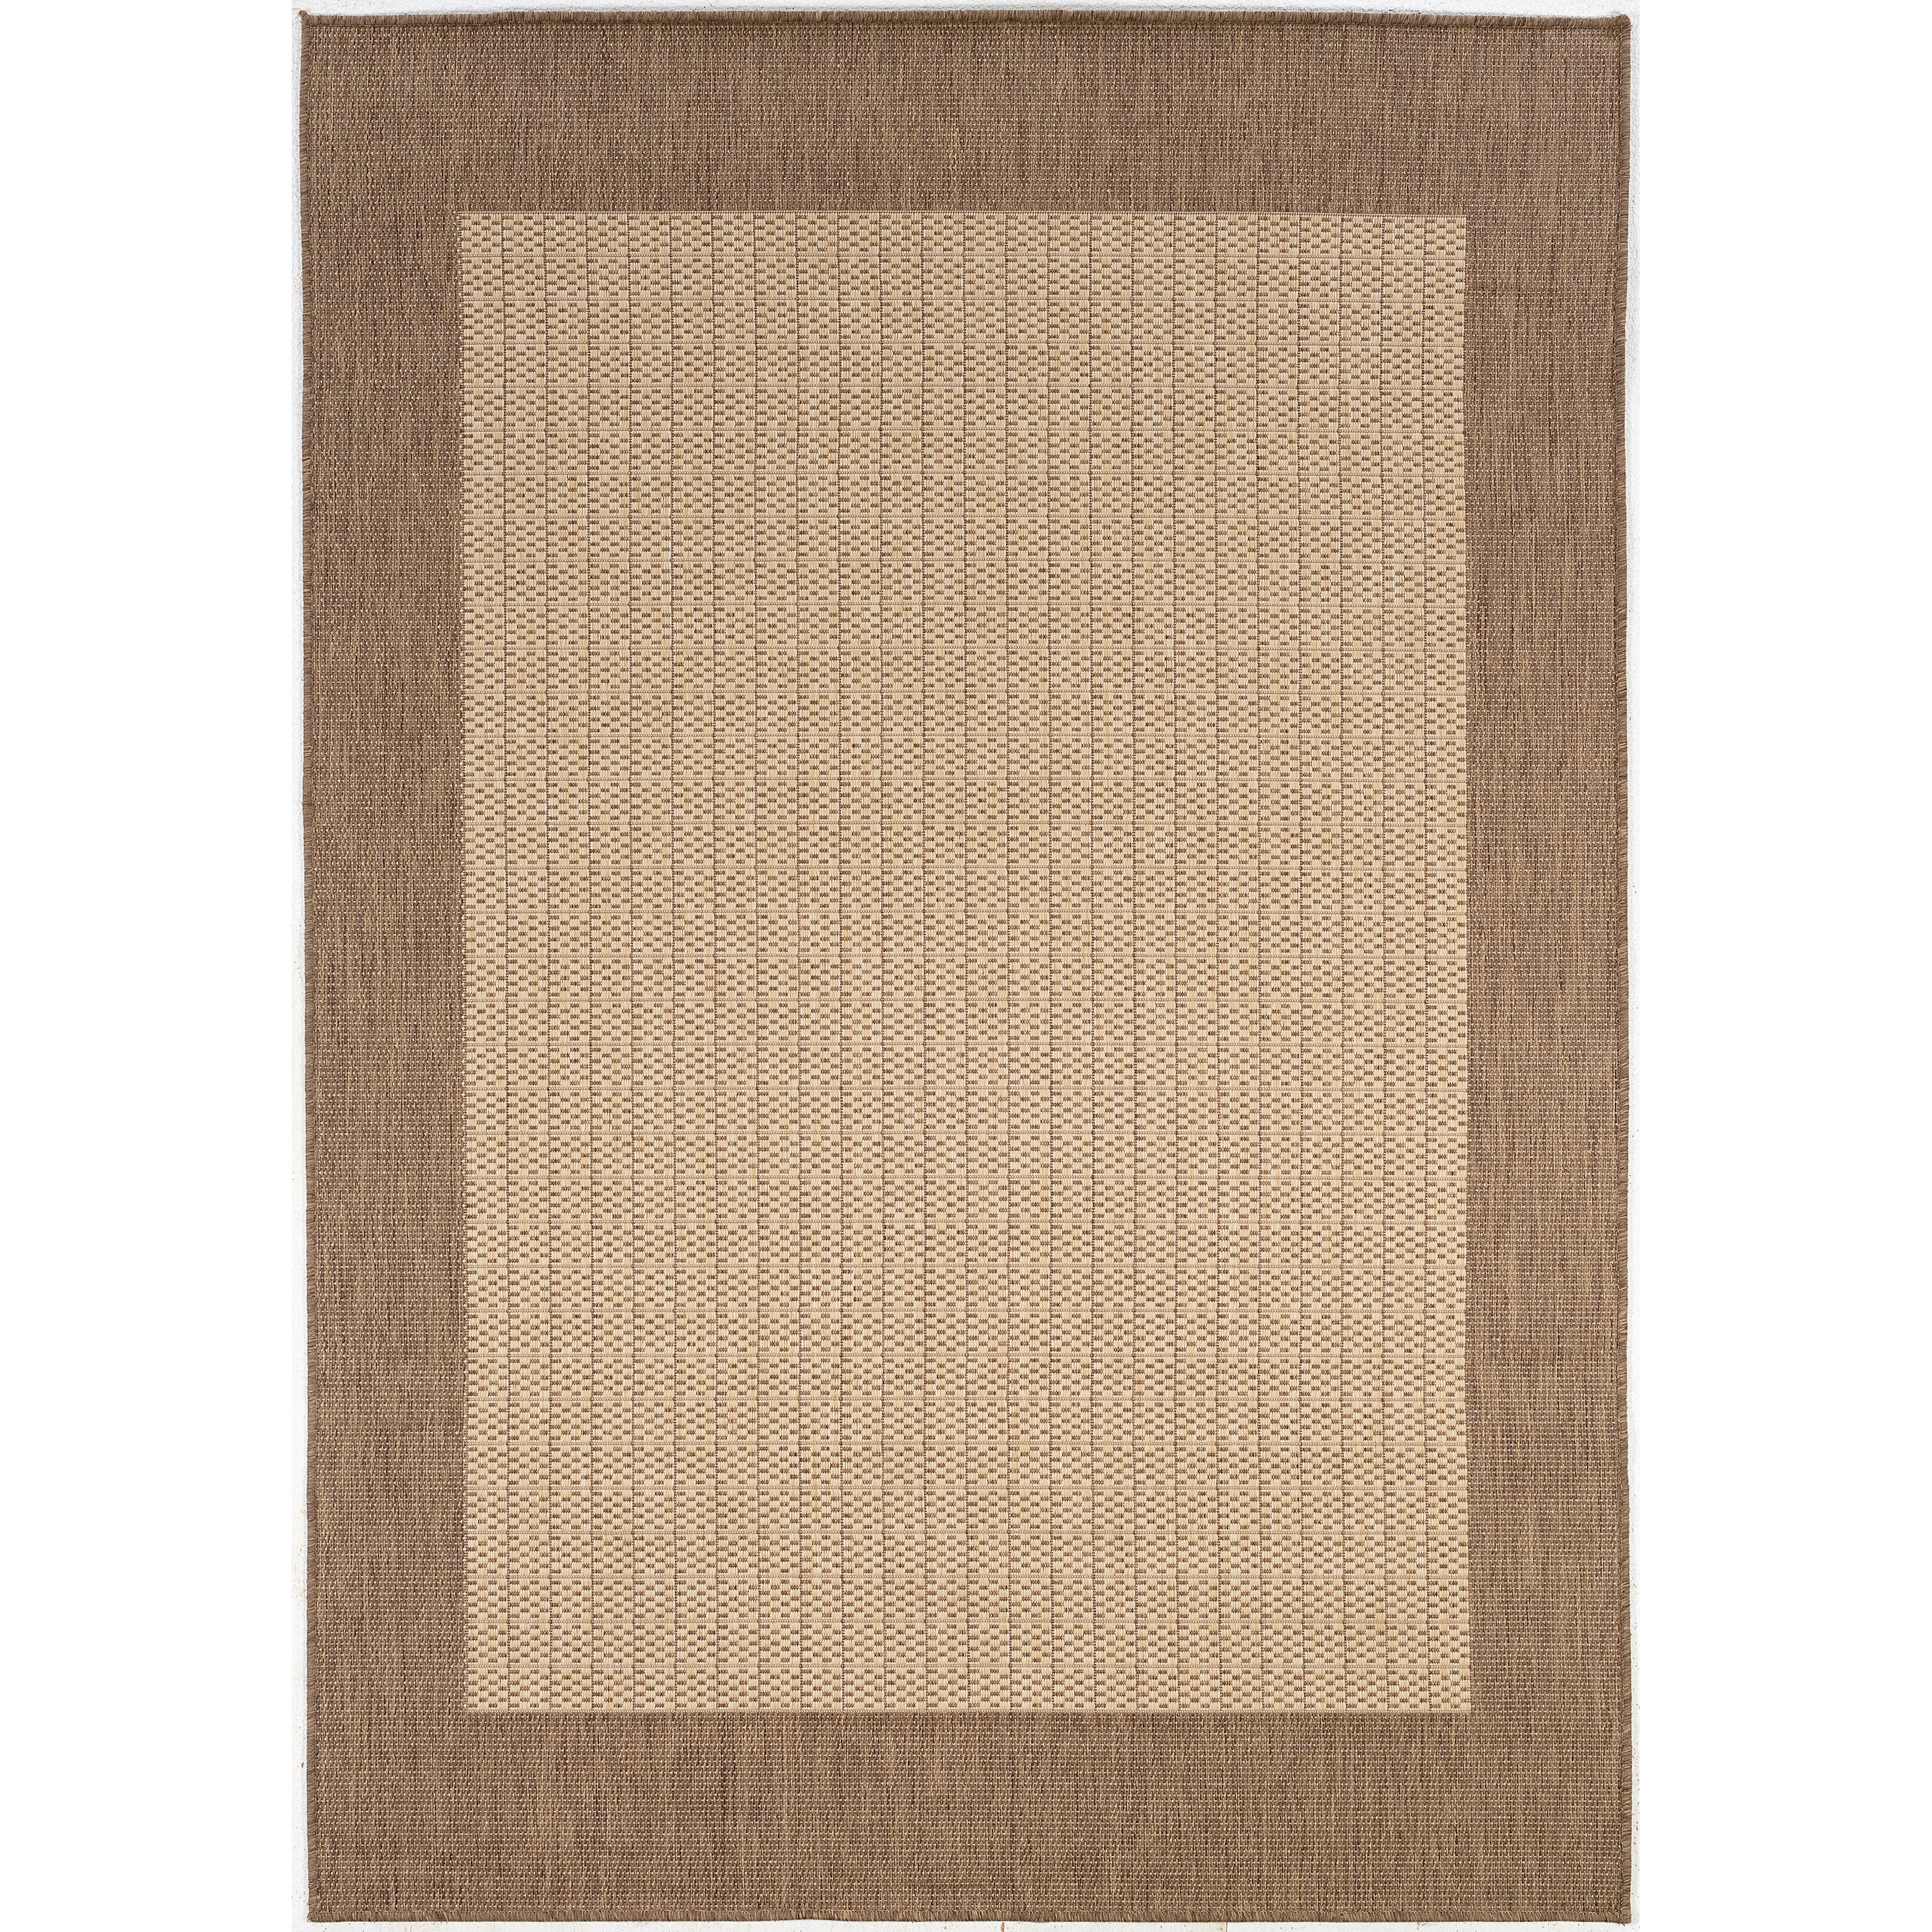 Checked Area Rugs: Couristan Recife Checkered Field Natural Cocoa Indoor